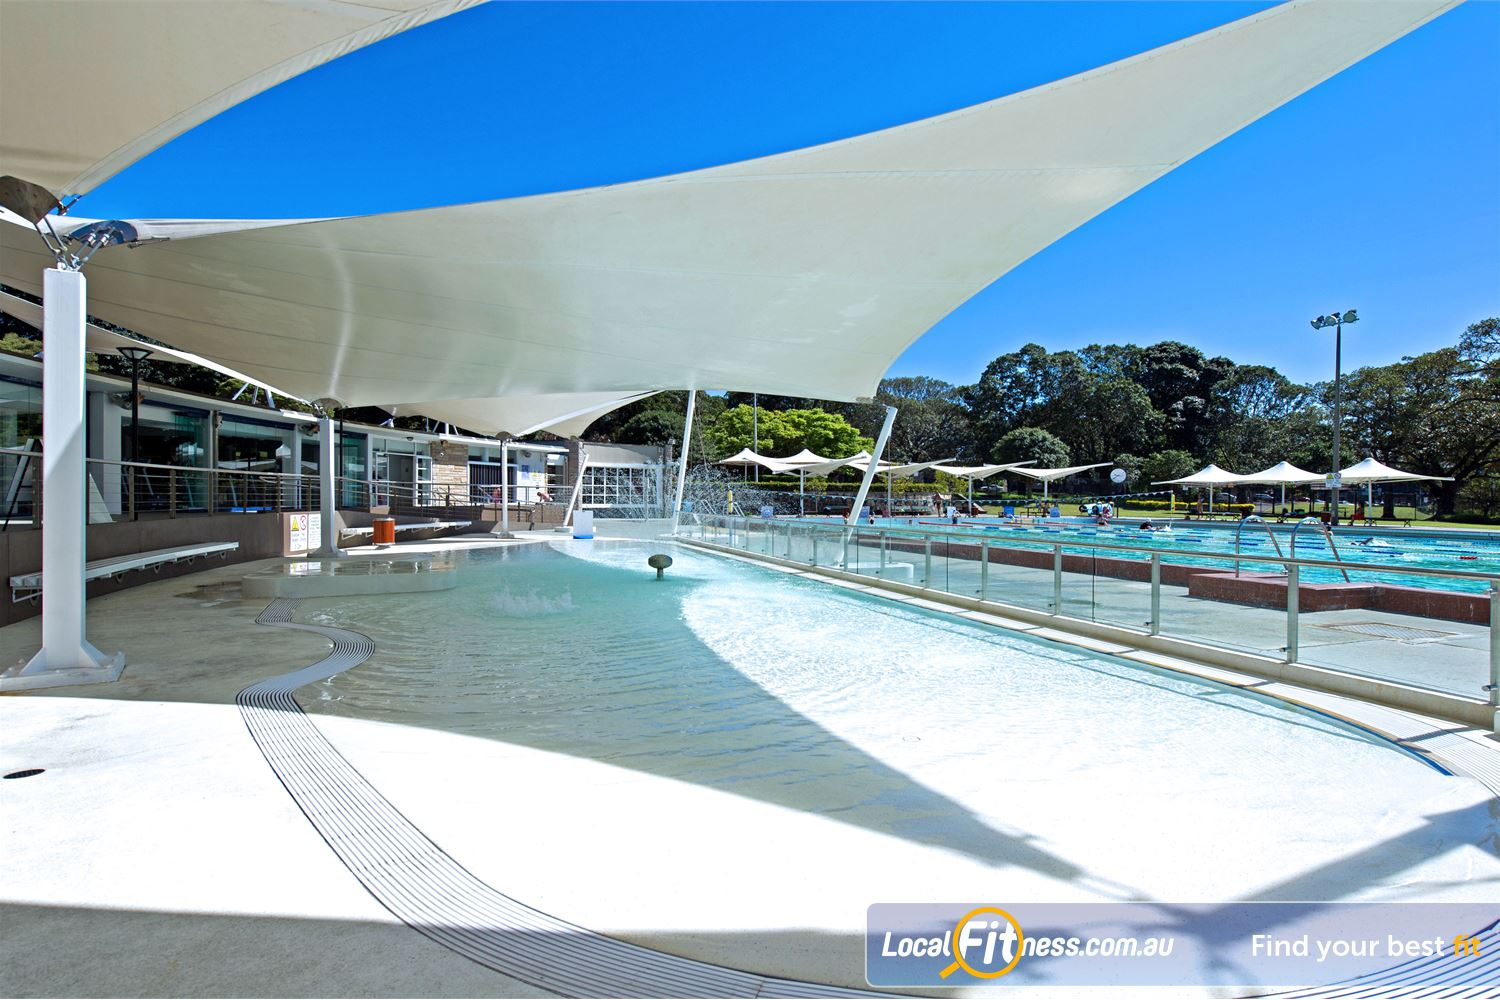 Victoria Park Pool Camperdown Our splash pool for the toddlers.